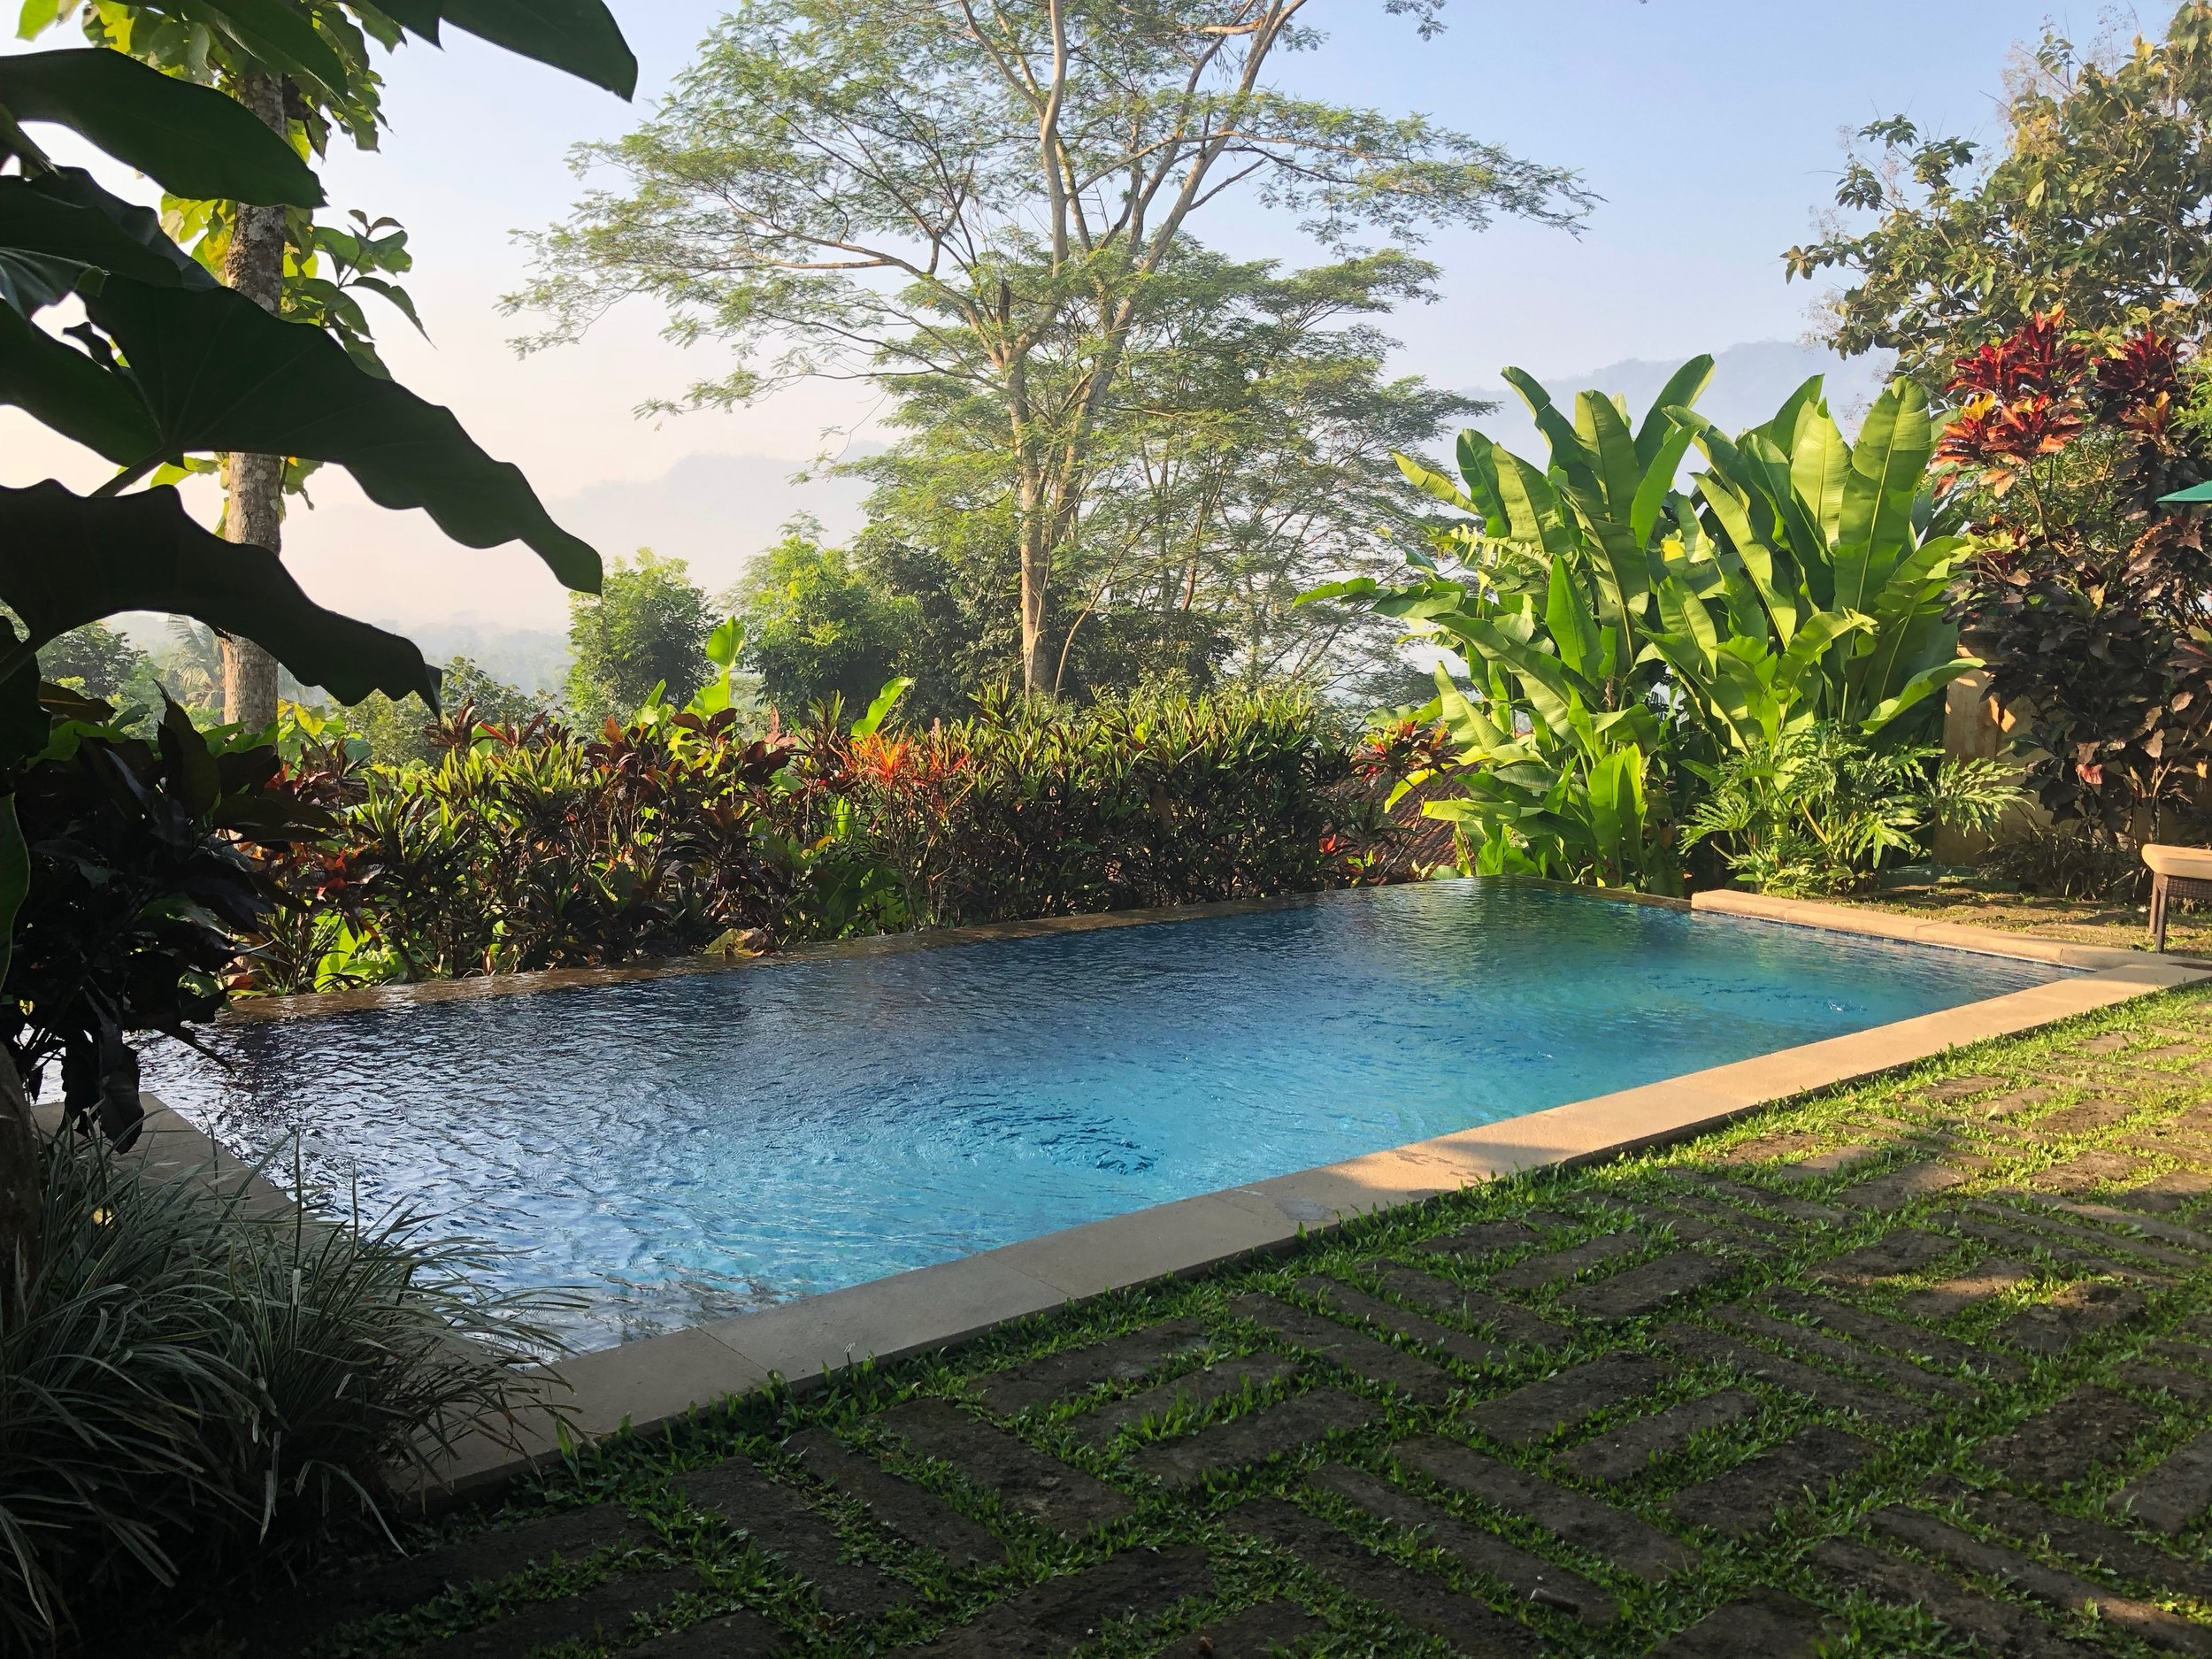 The private infinity pool had a view of Borobudur in the distance